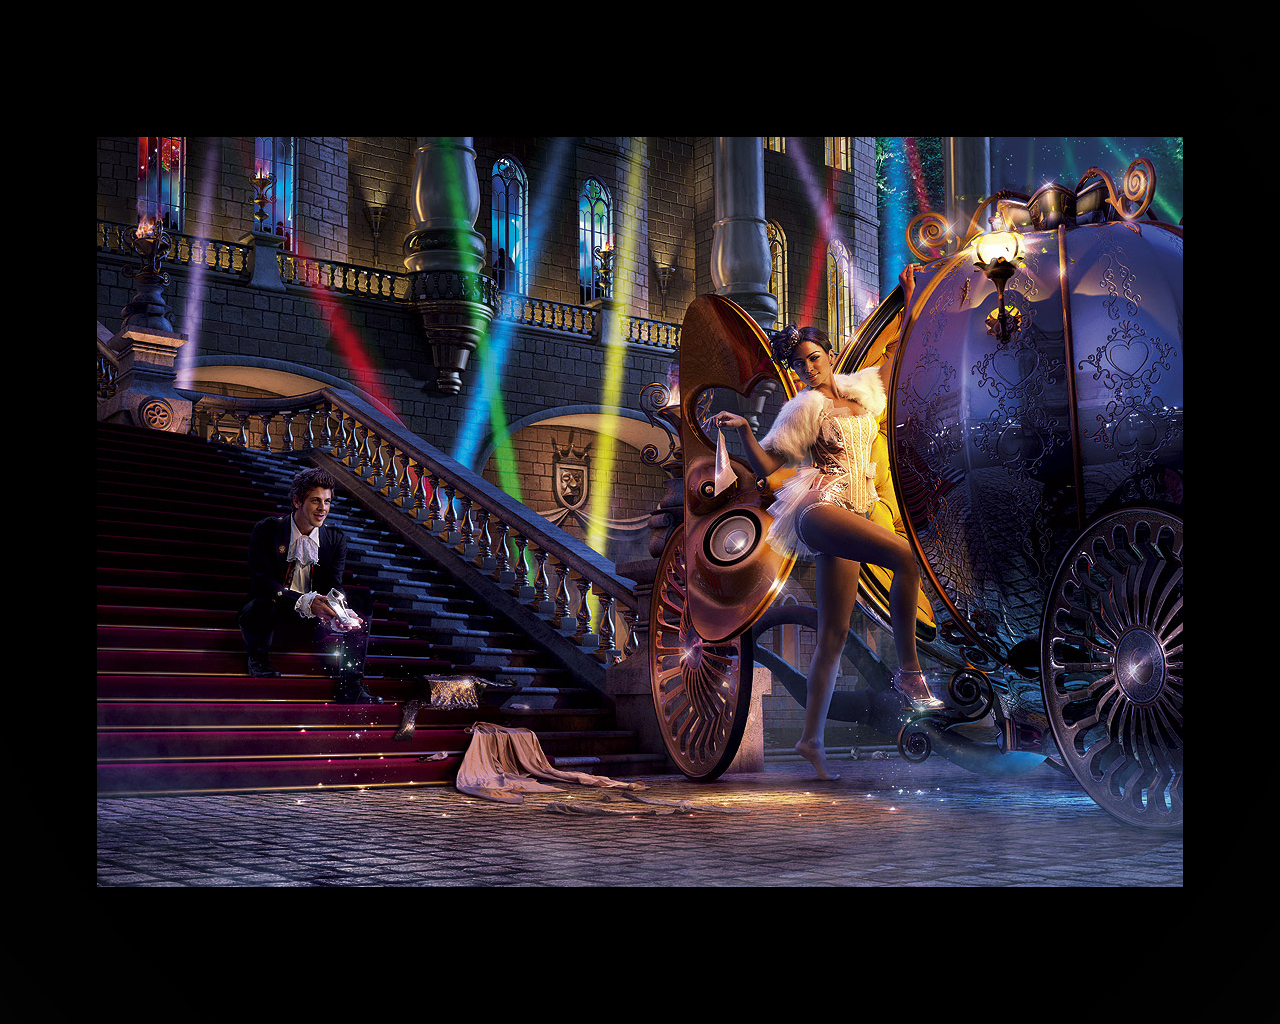 Creative and conceptual, a little erotic wallpaper for your desktop - on the theme of fairy tale Cinderella.